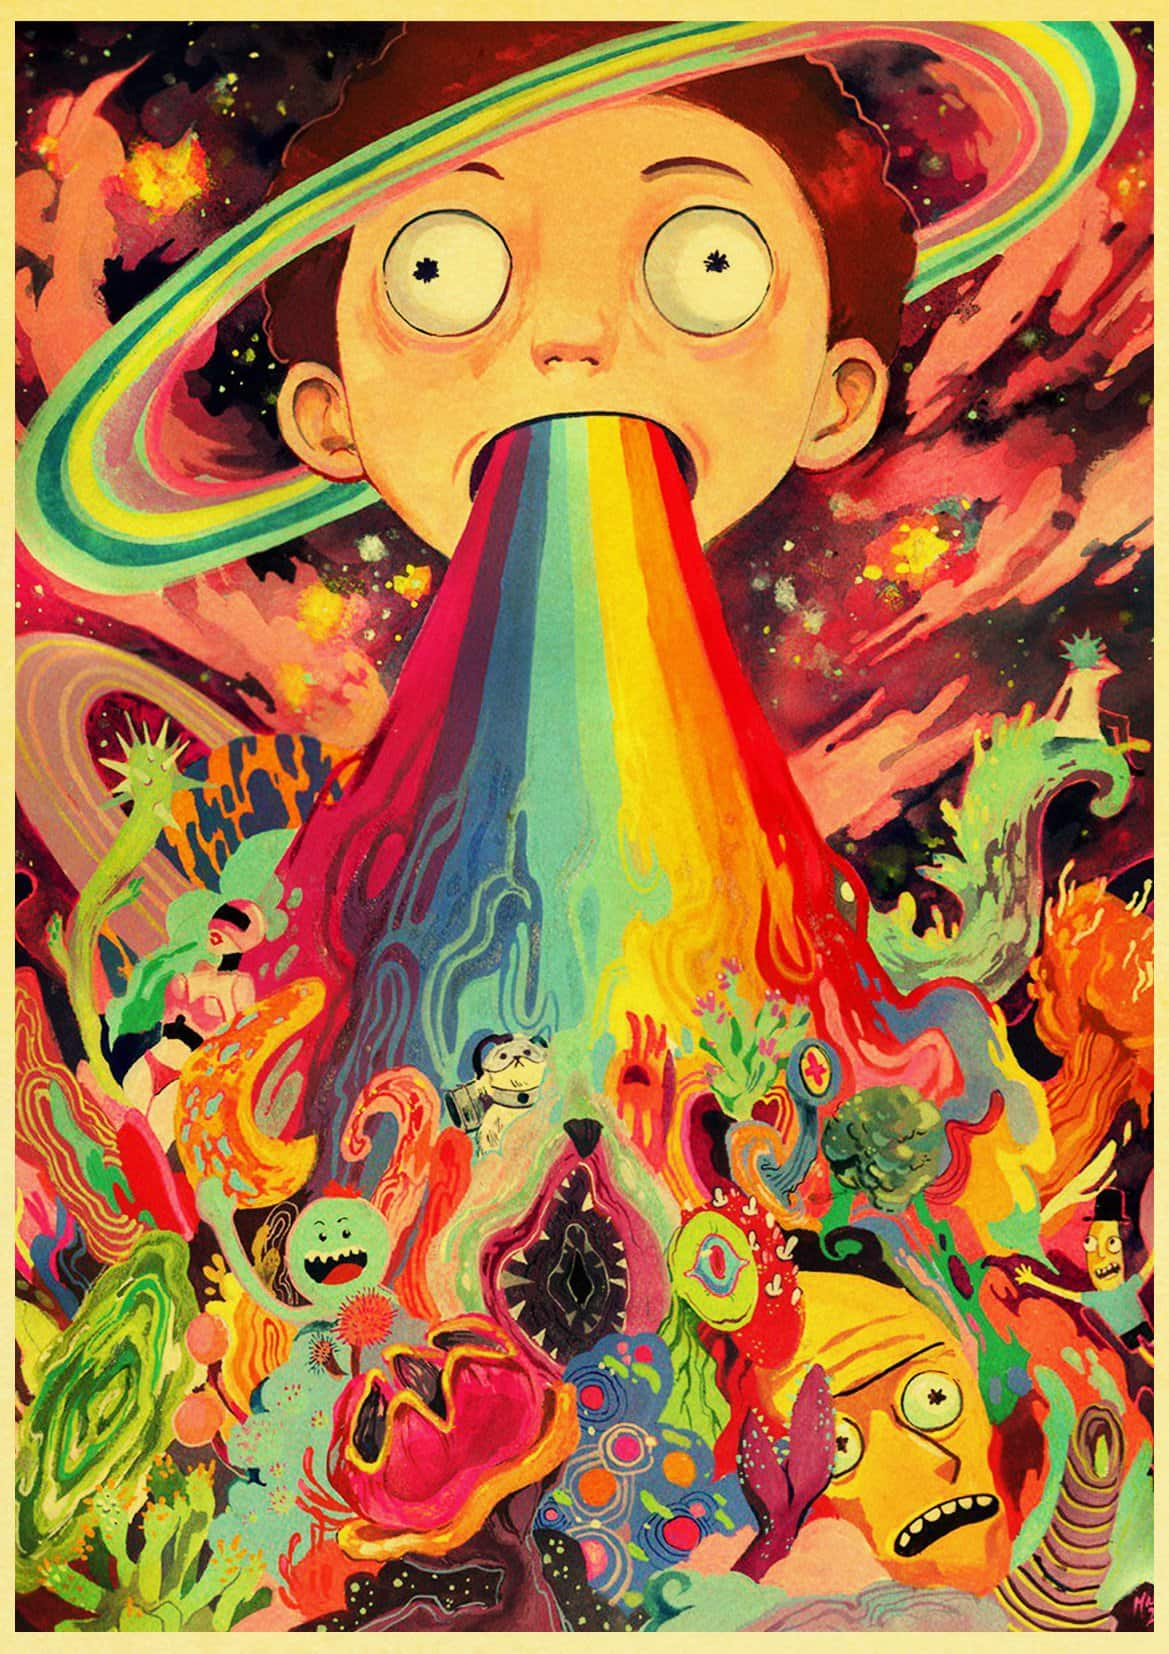 Cute Morty Smith Retro Poster   Rick And Morty Stuff 1169x1654